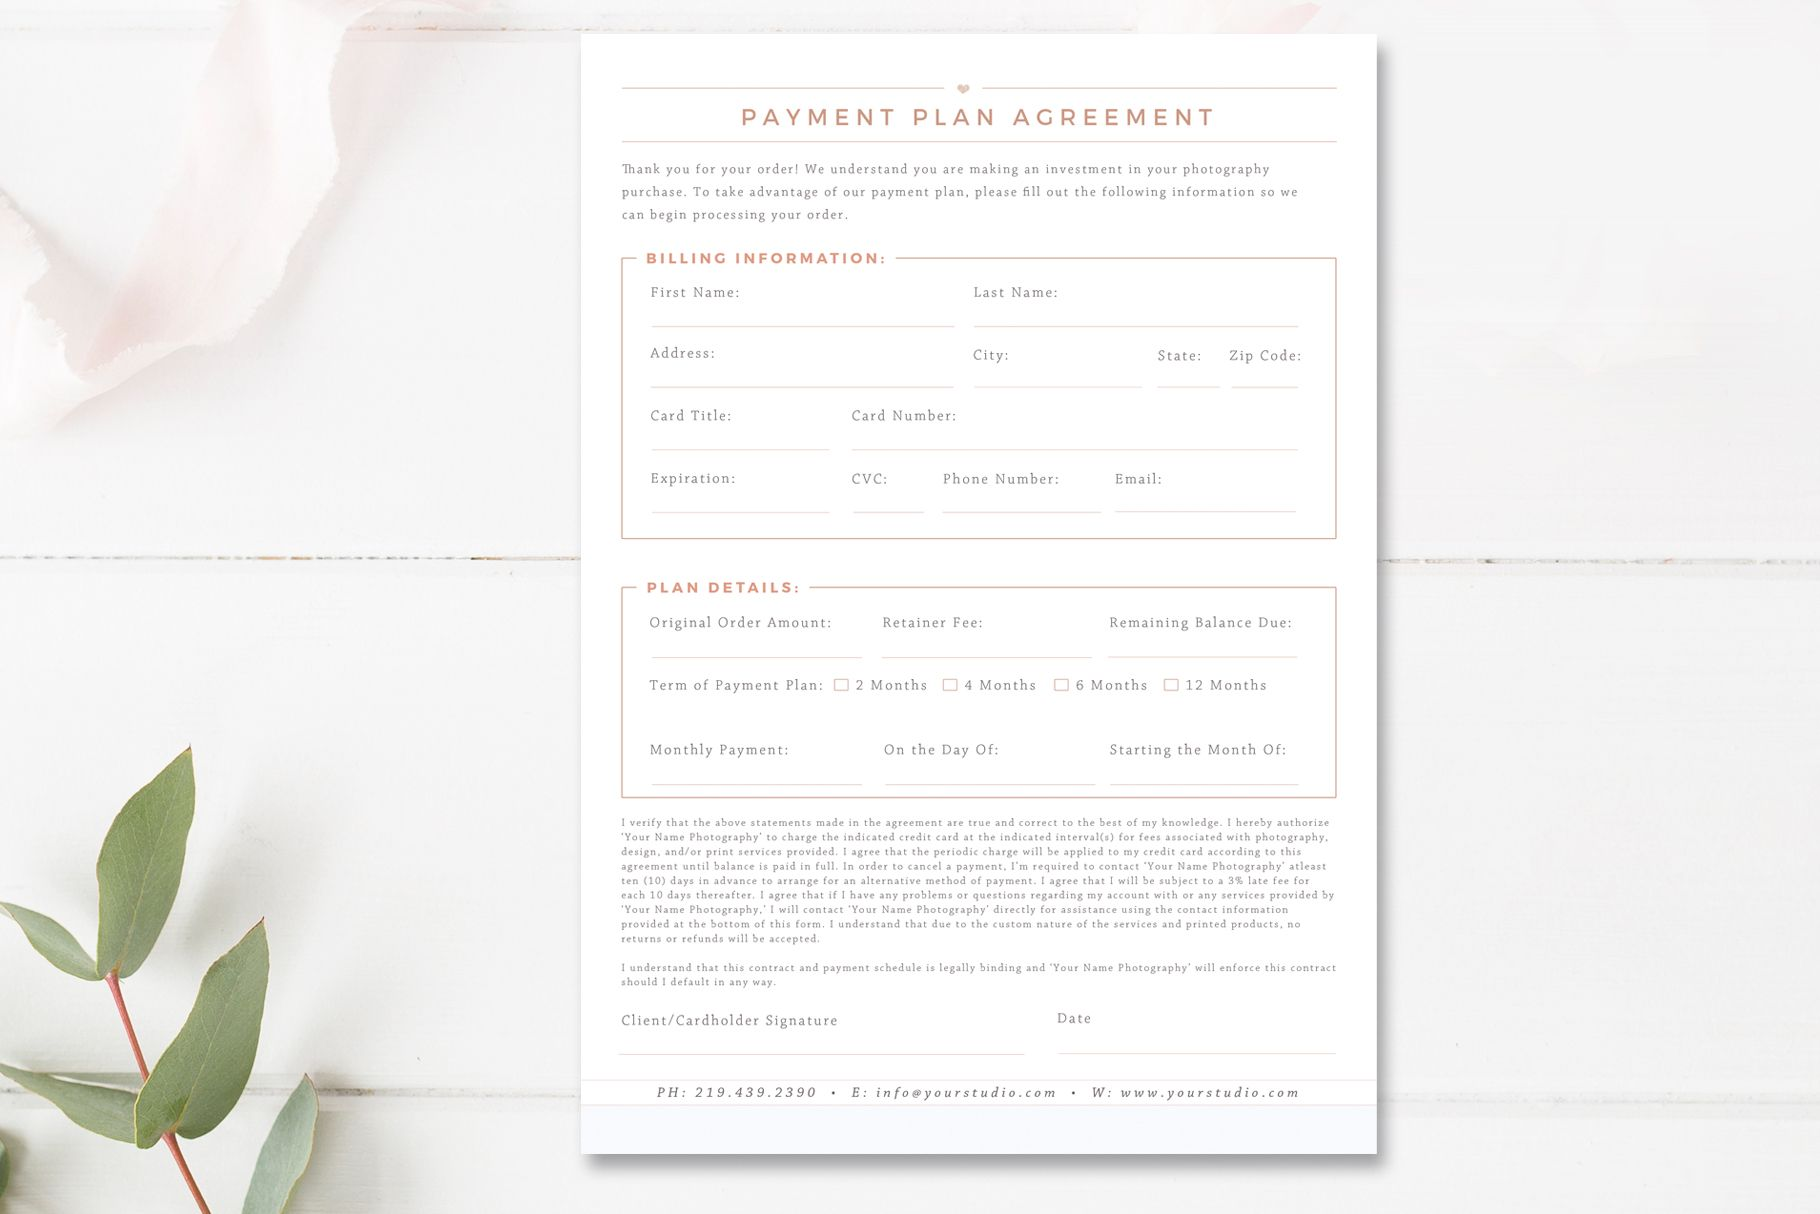 Professional Payment Plan Agreement Template Editable In Photoshop